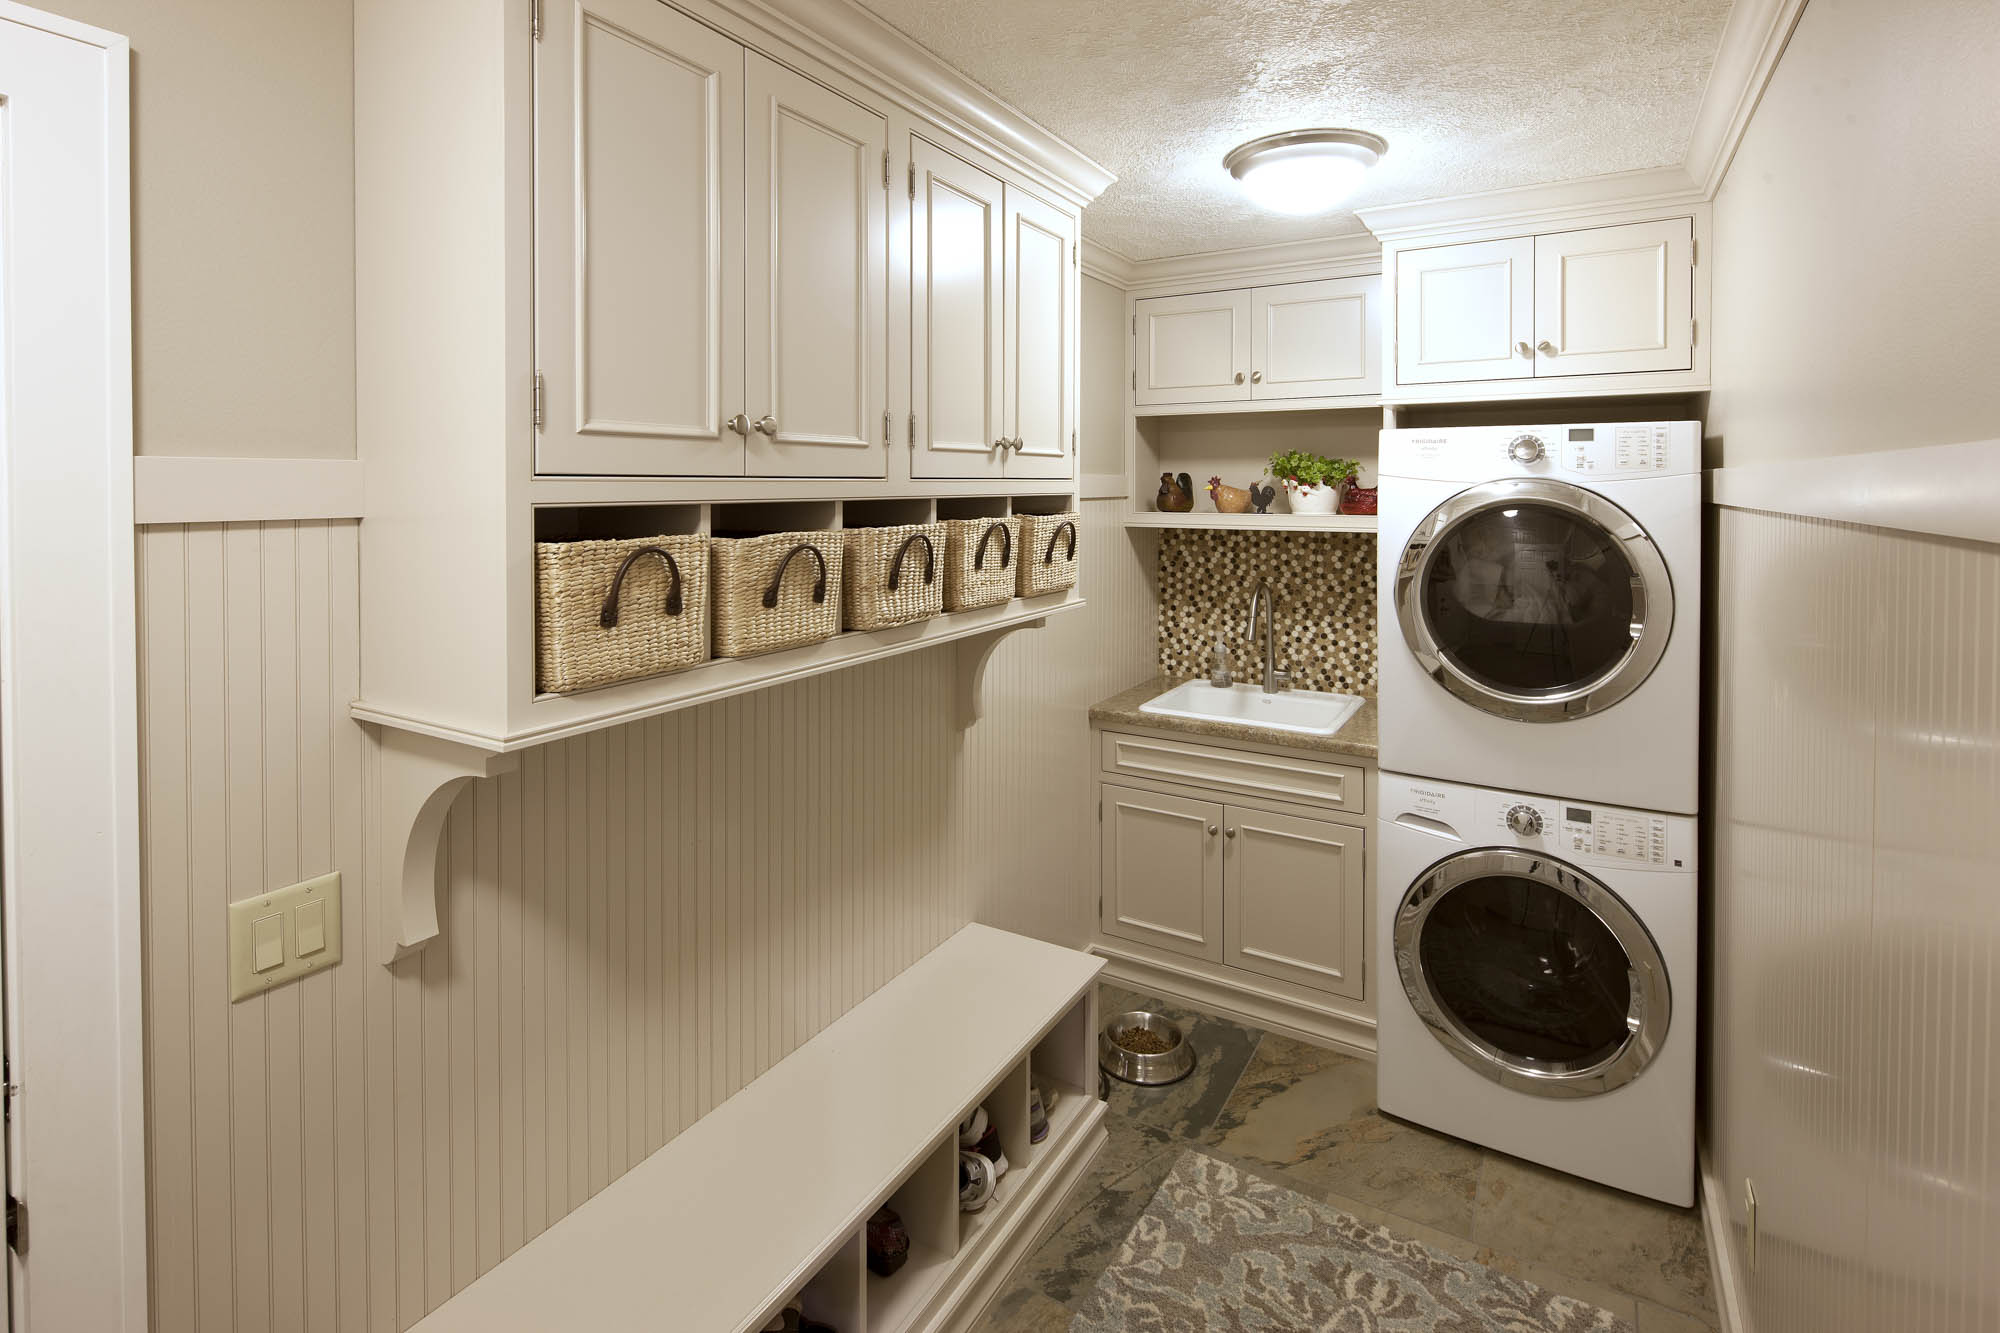 Painted laundry room cabinets in Light Mocha